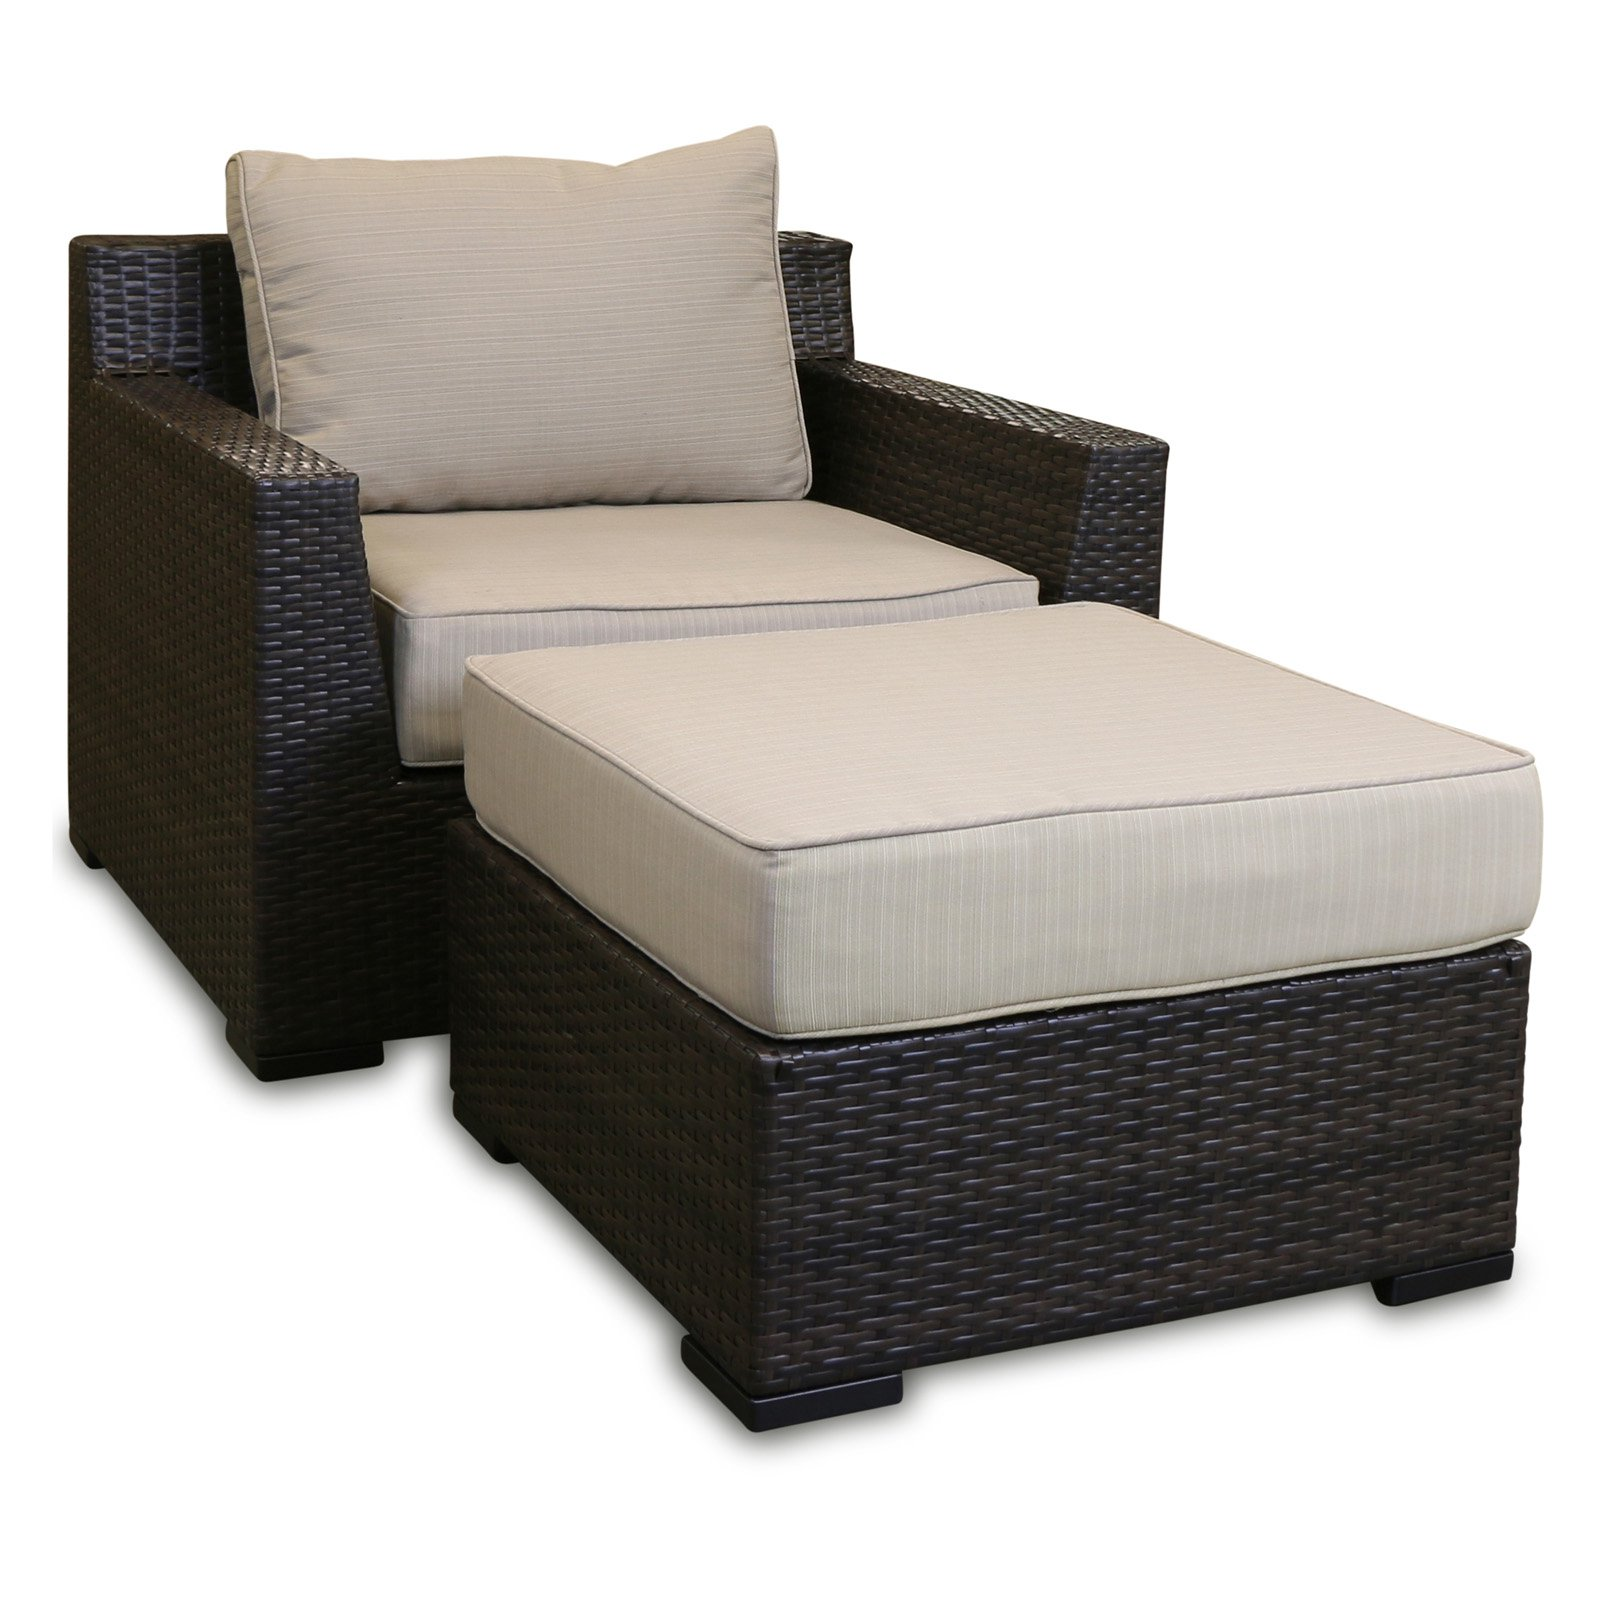 Shoreline Rattan Southport Wicker 2 Piece Patio Lounge Chair and Ottoman Set